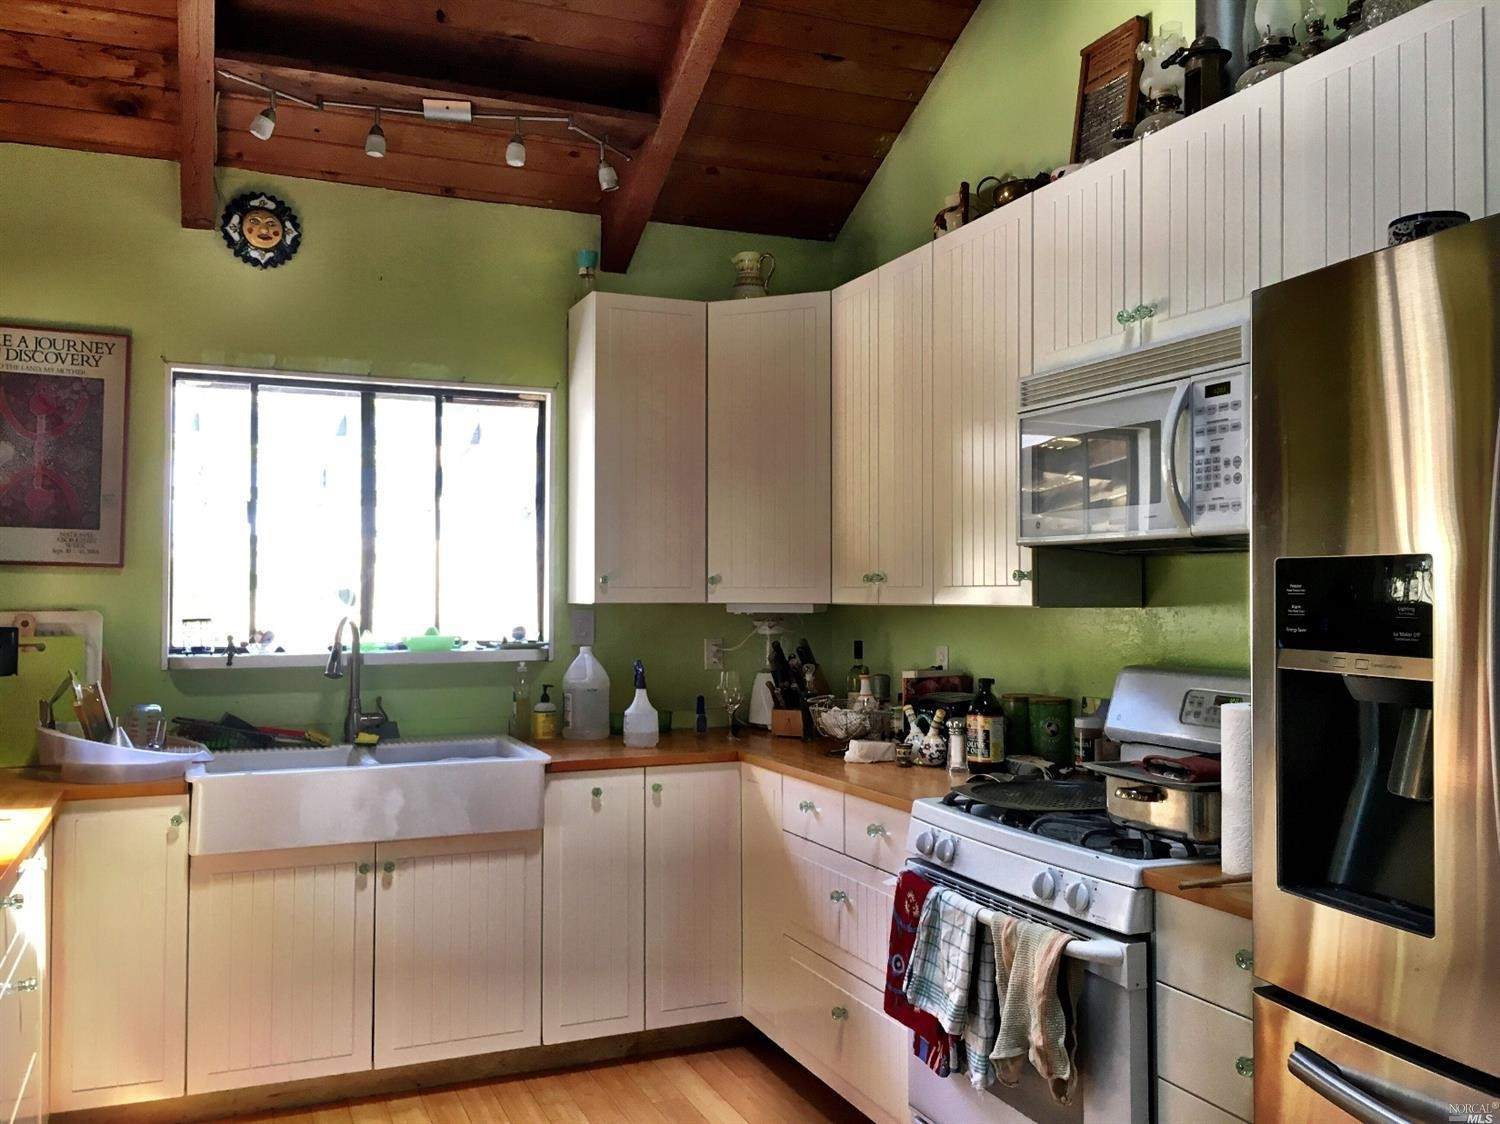 Remodeled kitchen with apron-front sink in a home for sale on Guntly Road in Philo, CA.